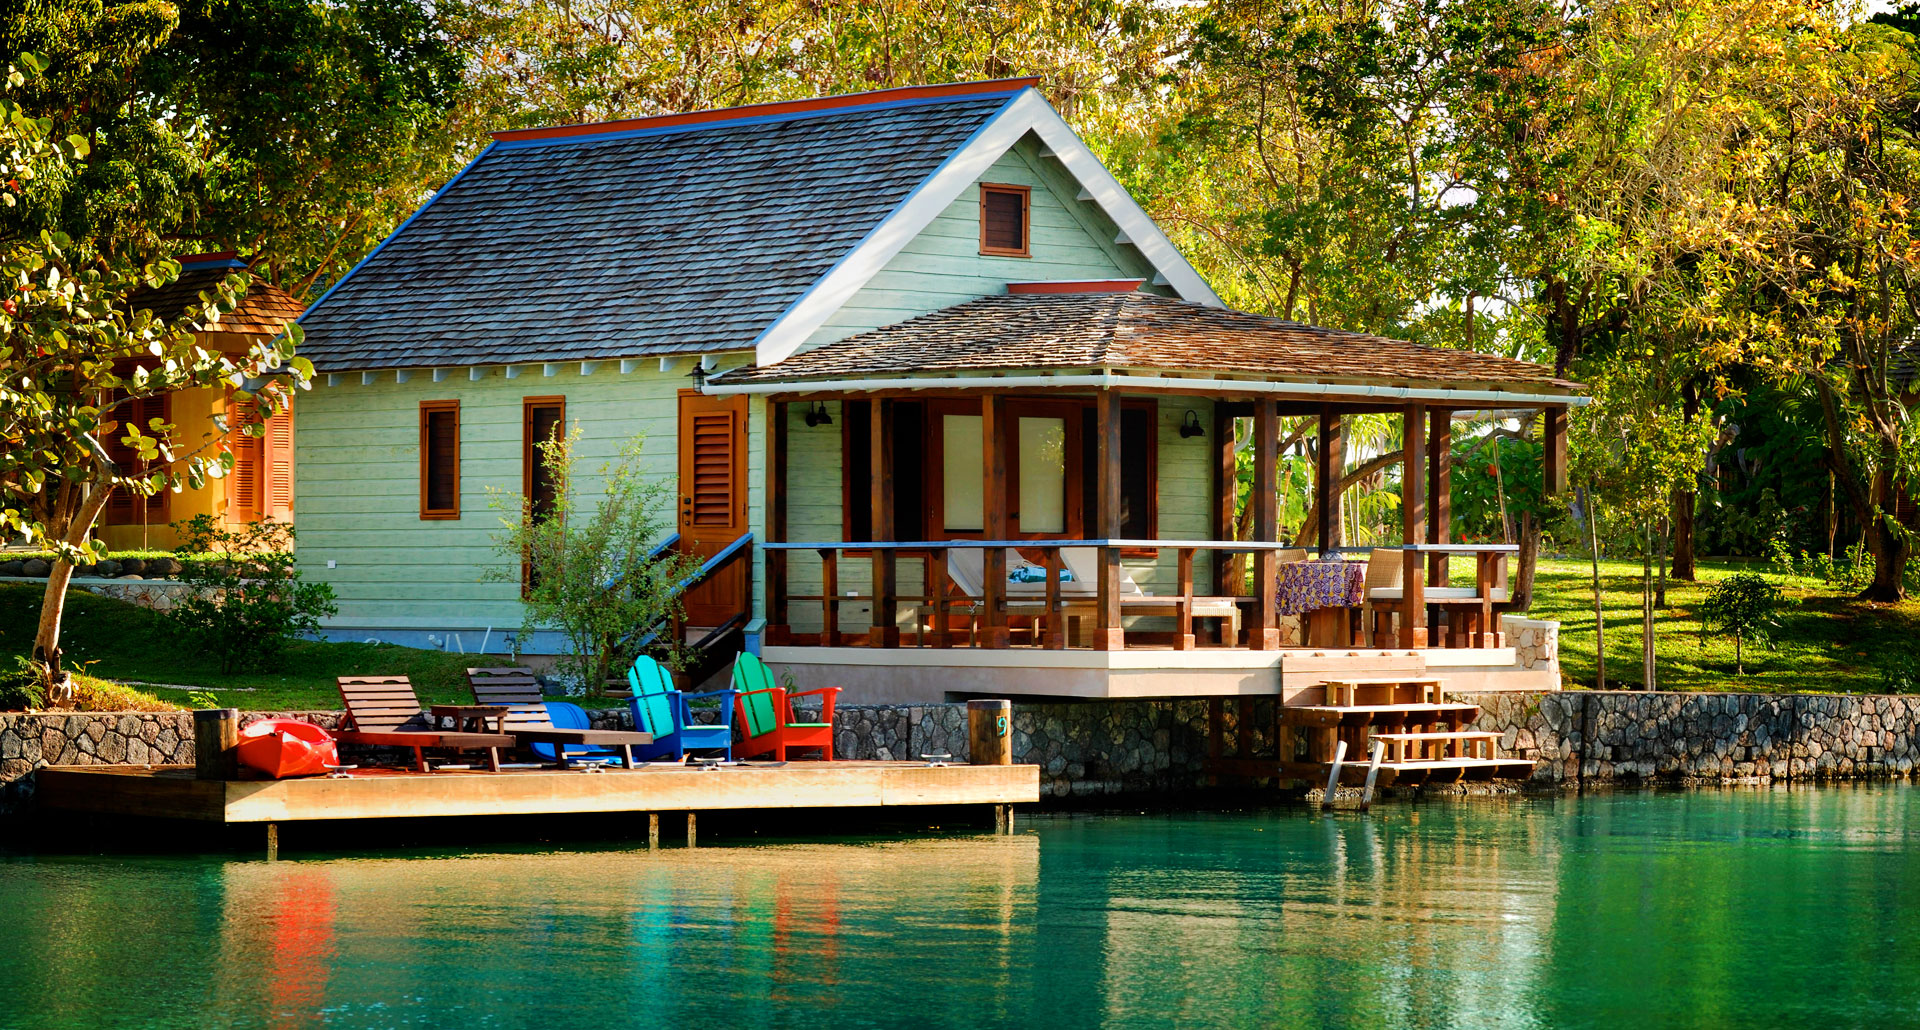 Goldeneye - boutique hotel in Jamaica